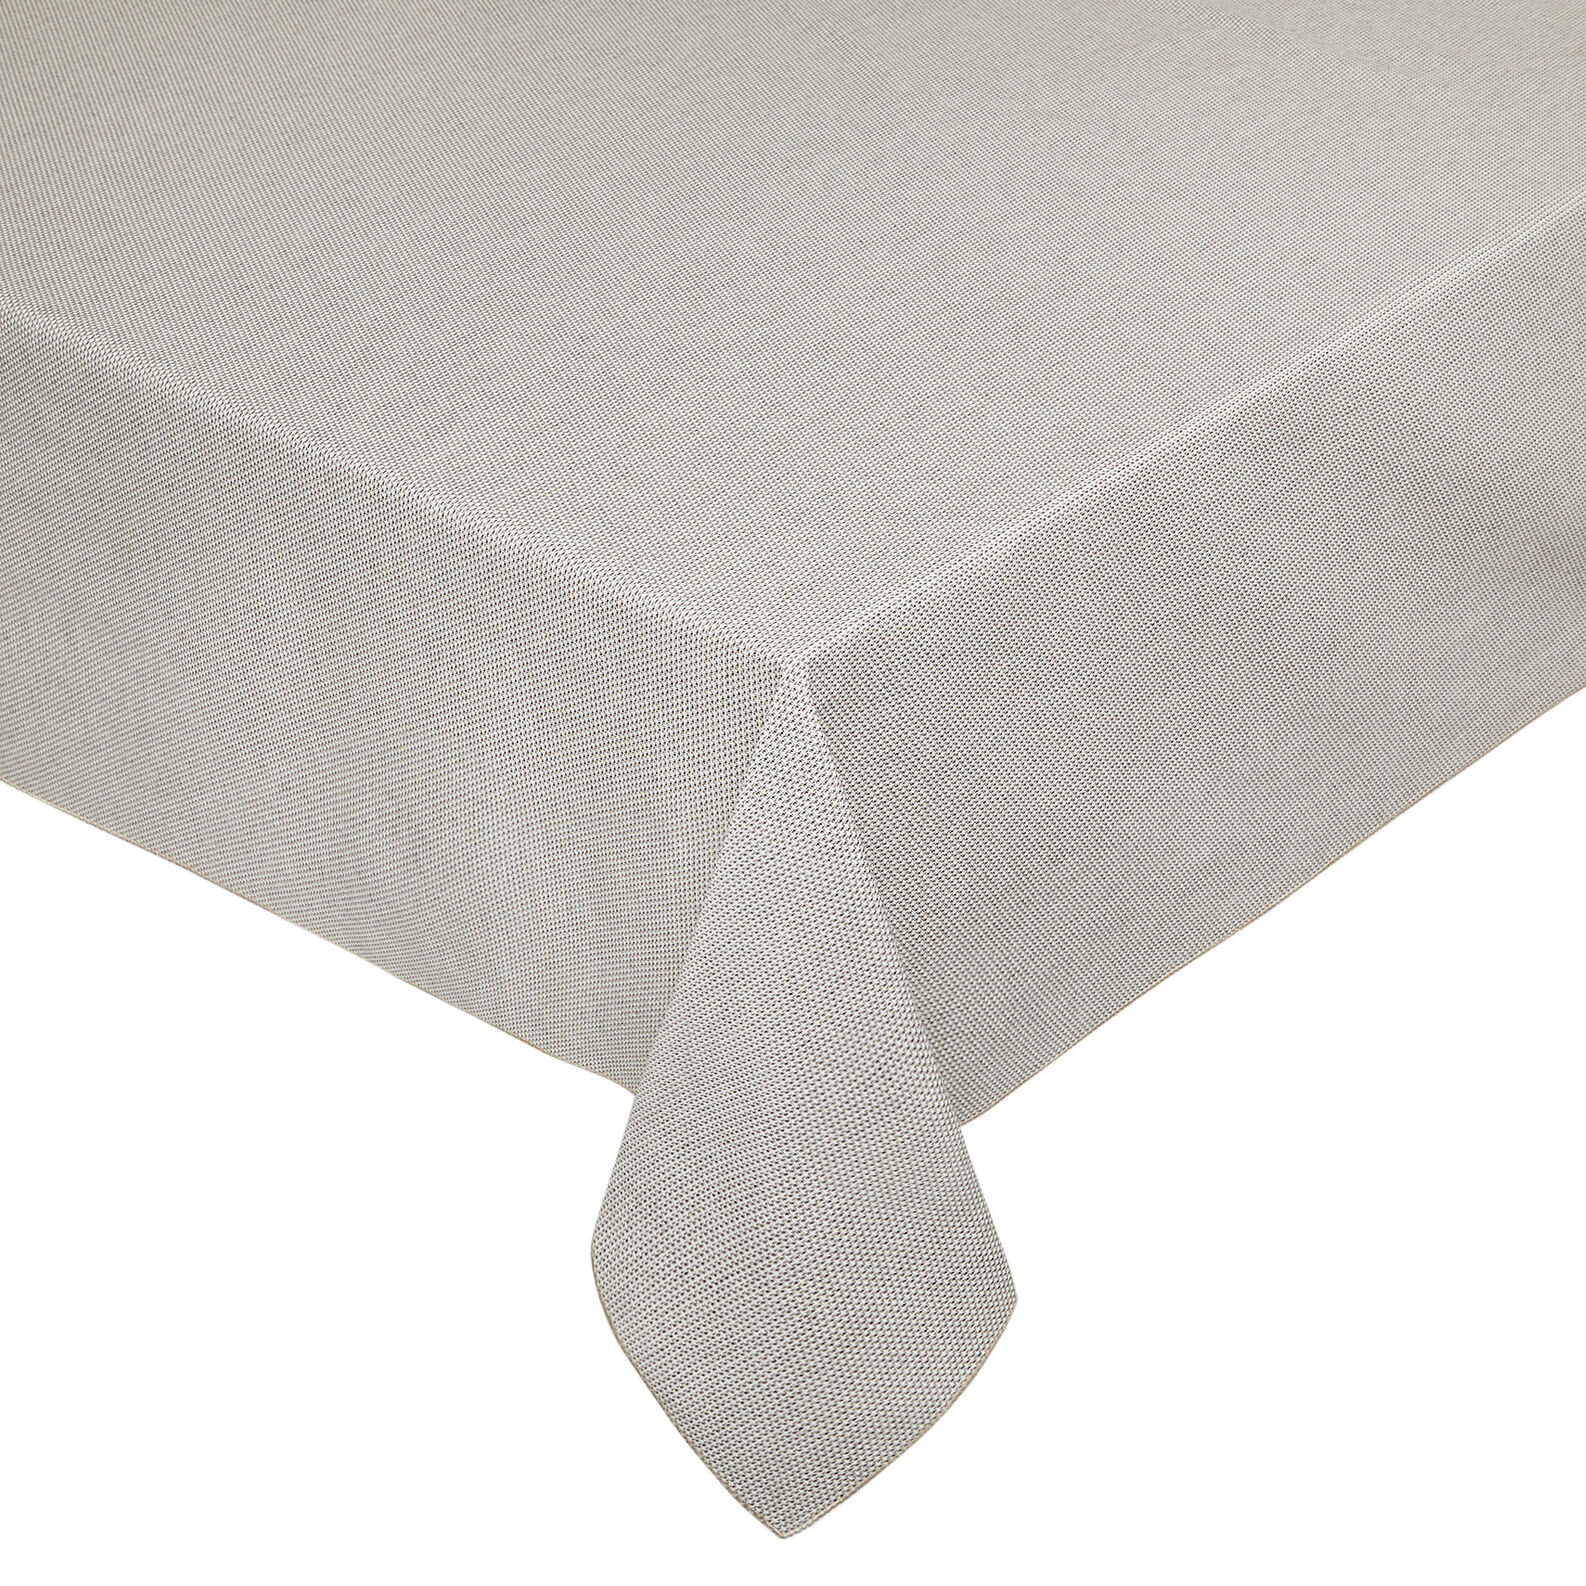 Spotted-effect cotton and lurex tablecloth